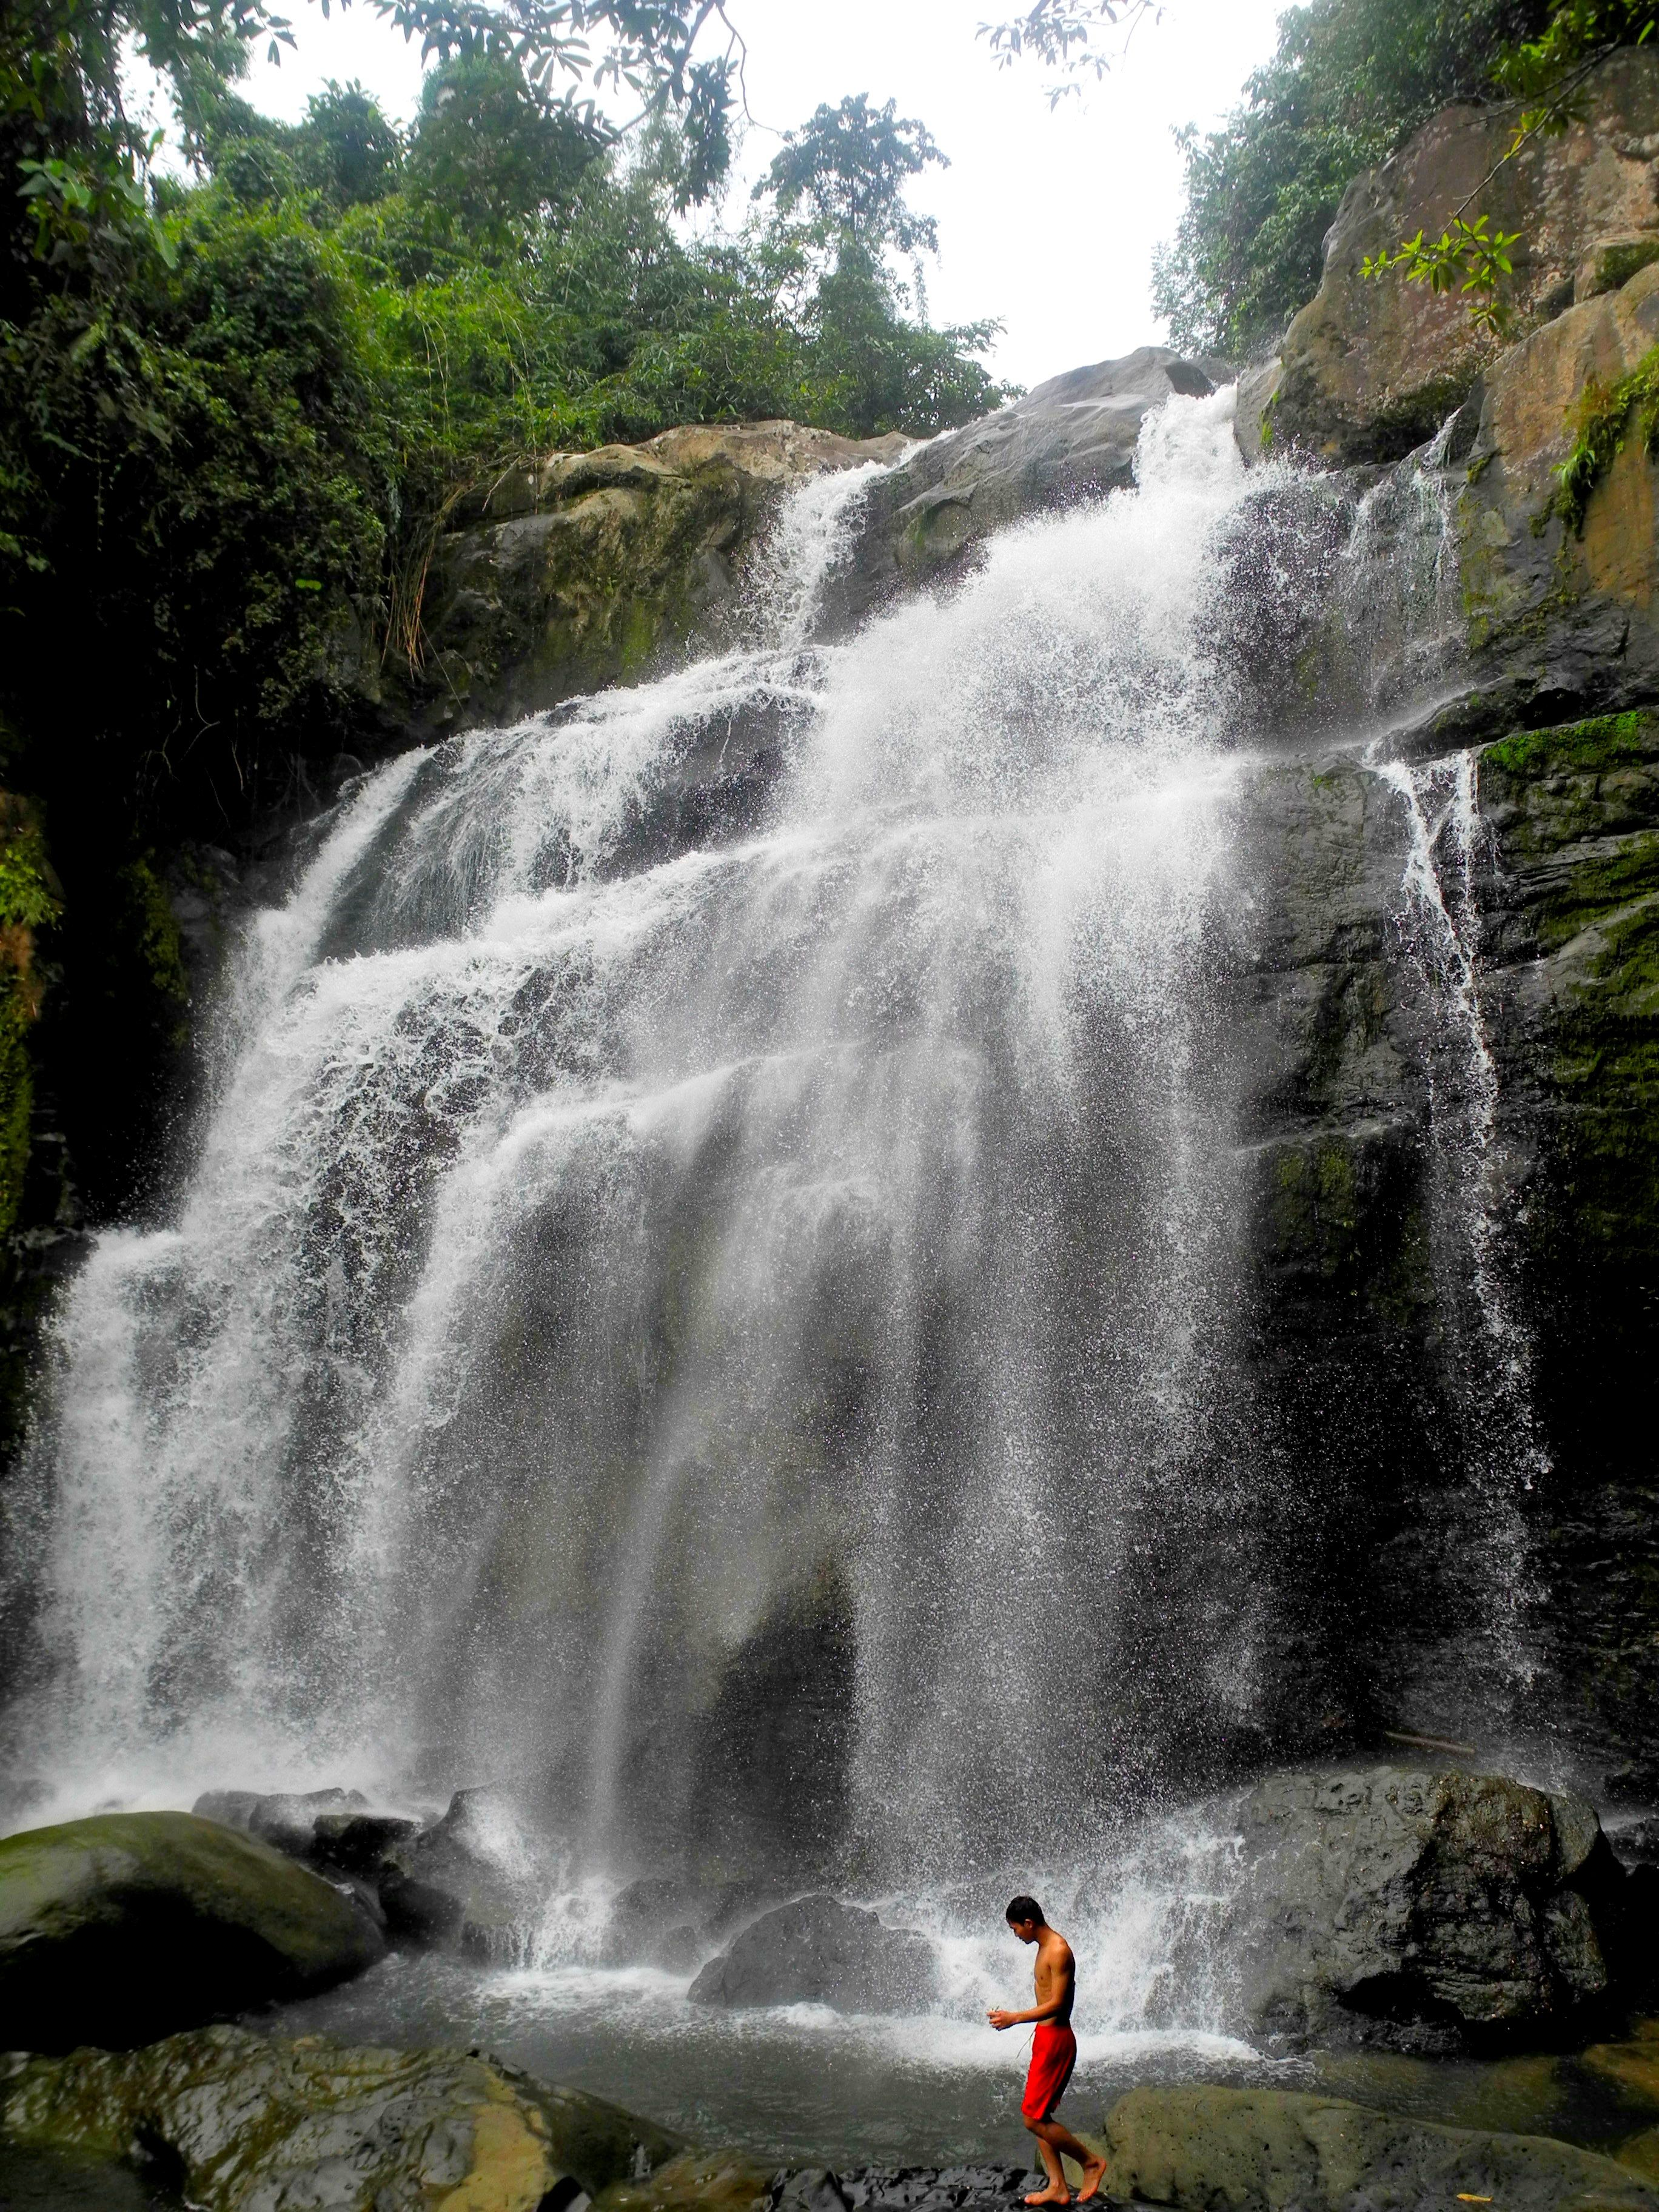 Natural beauty: Gareg Falls in Kampung Kiding - Backyard Tour